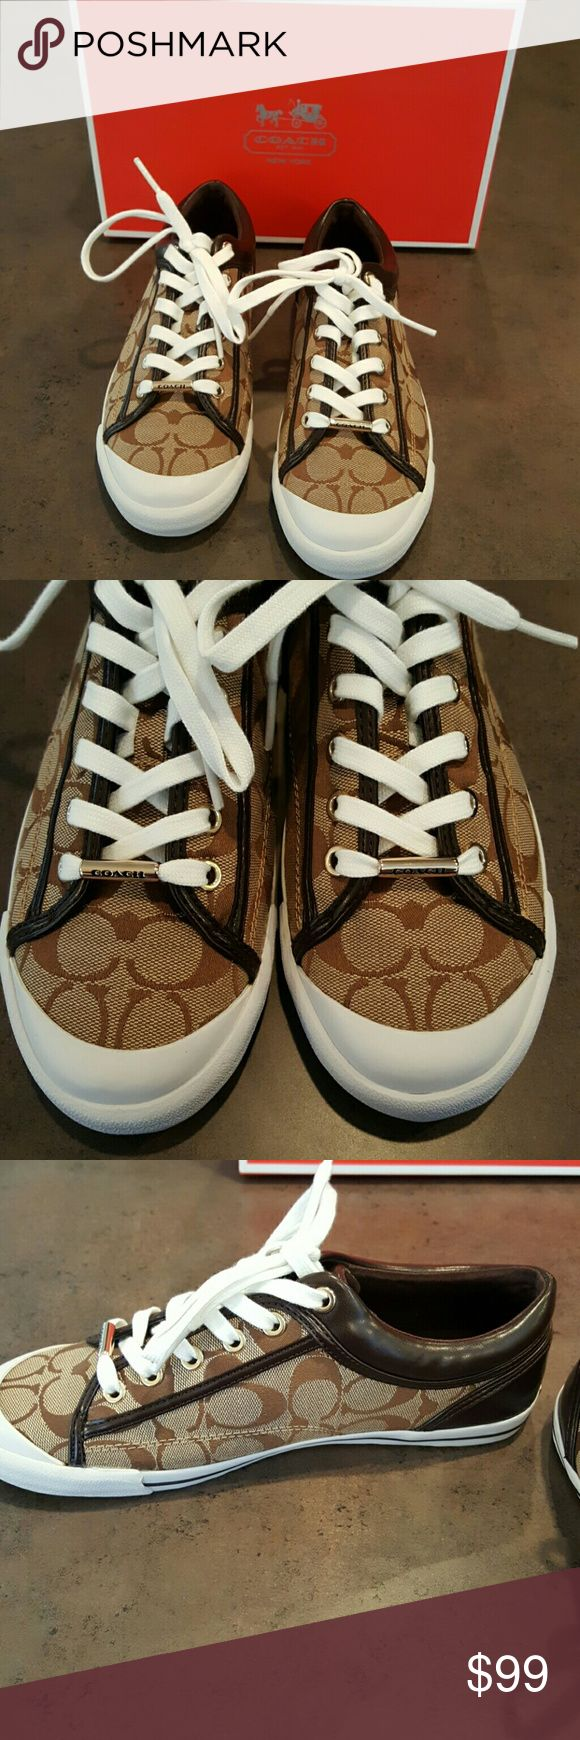 Coach Sneaker NIB Classic tan lace up Coach Sneakers. Size 8 1/2. Never worn, in box. Coach Shoes Sneakers